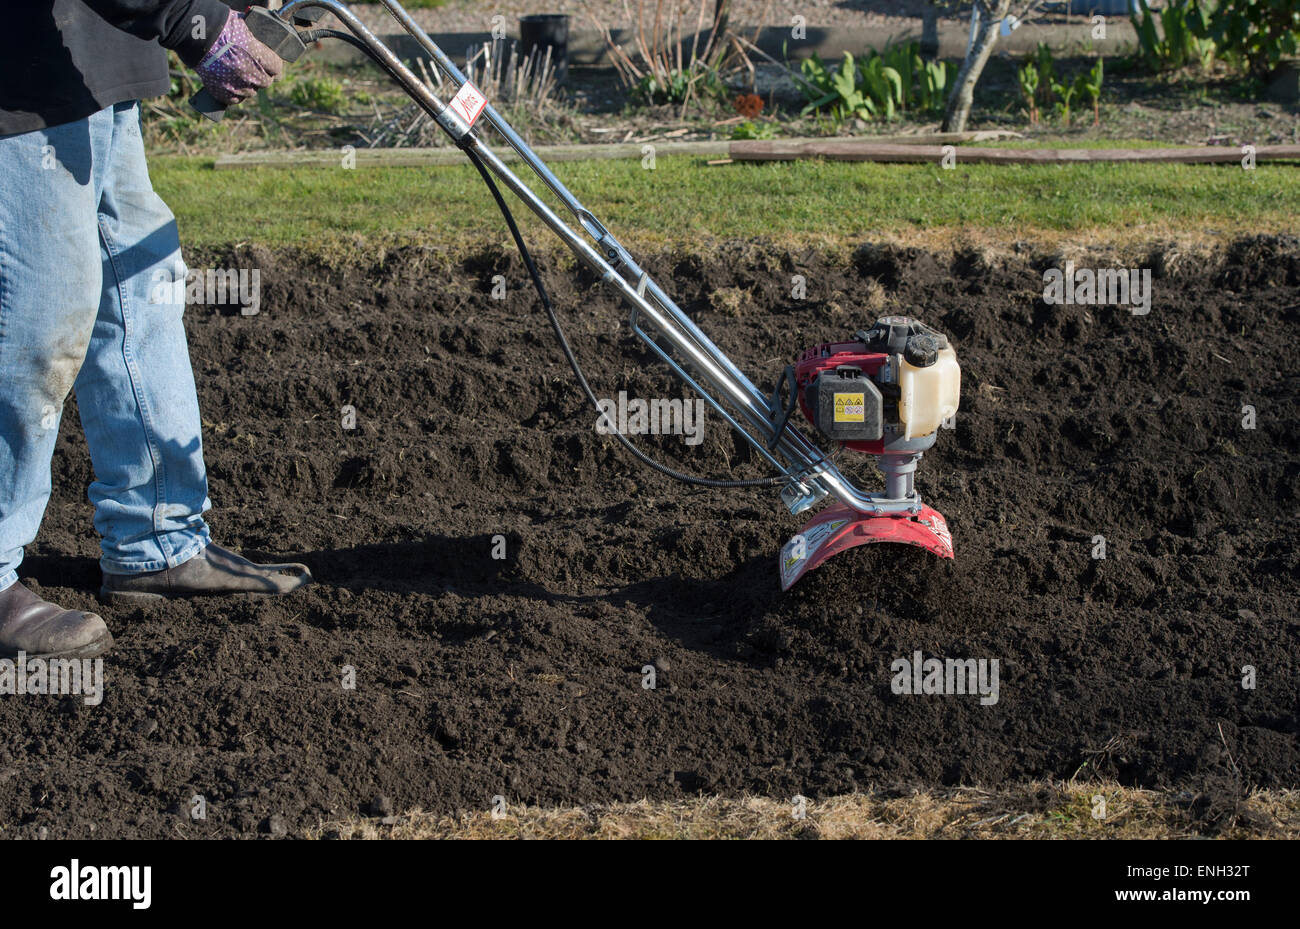 Gardener Rotavating A Vegetable Garden Preparing The Soil